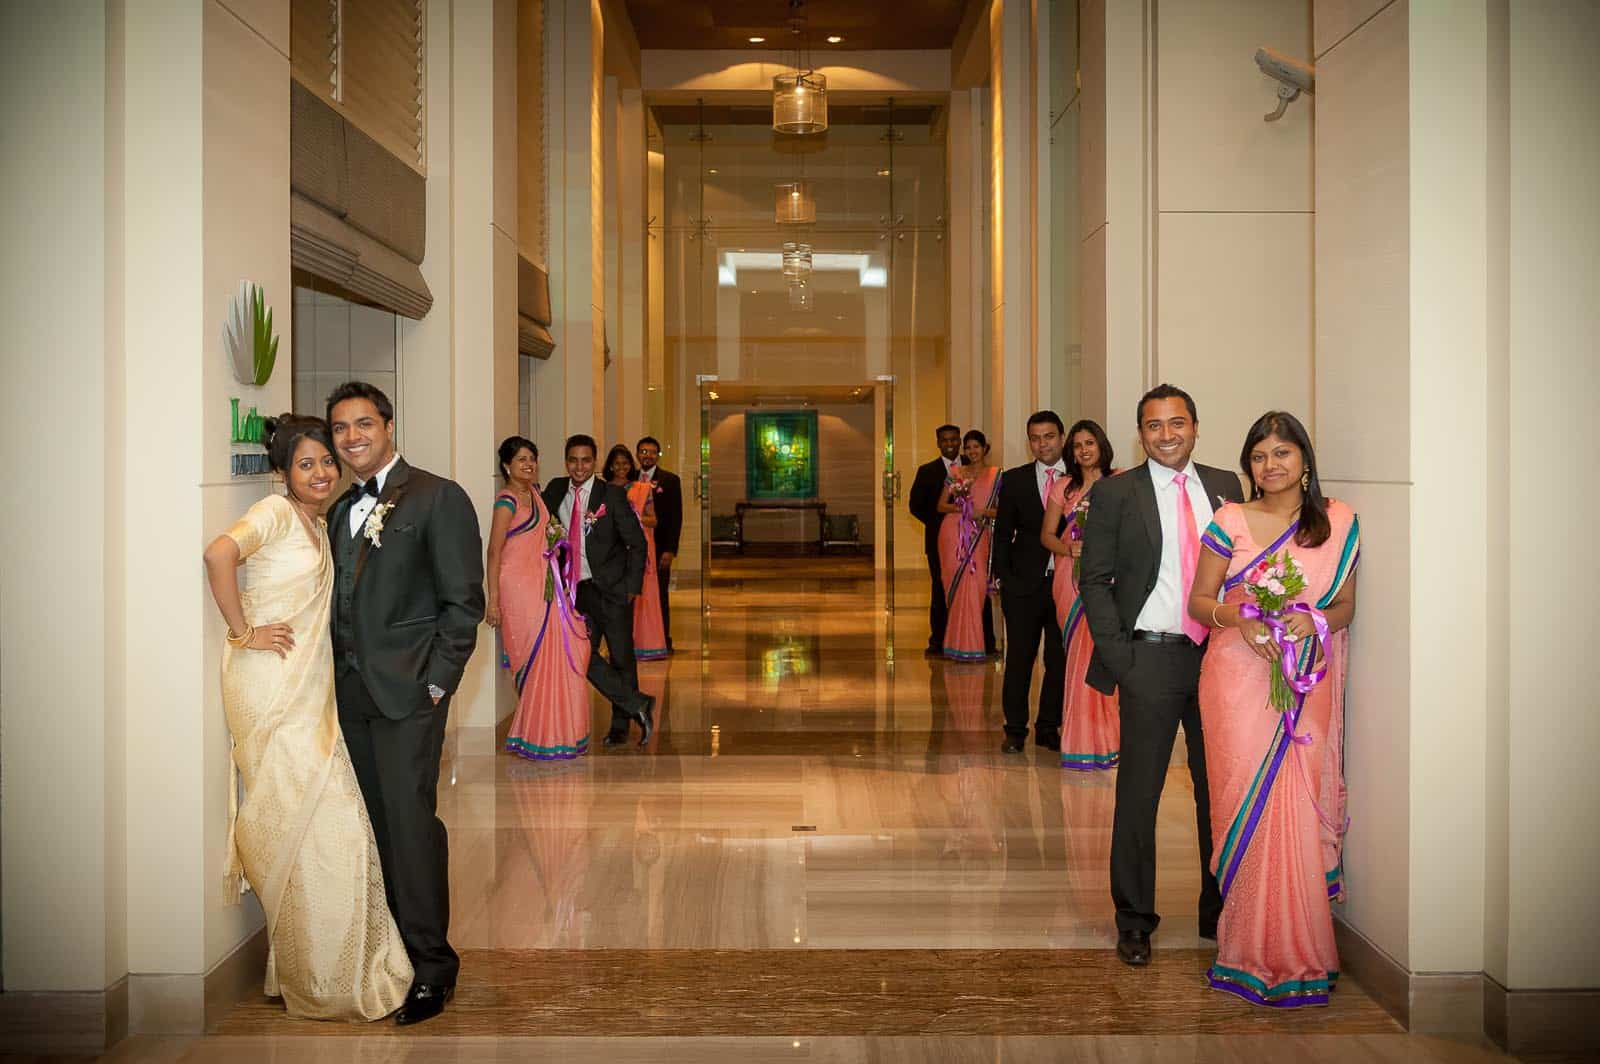 Best Wedding Photographer Bangalore India | Group Portrait Photography ITC Gardenia Bangalore